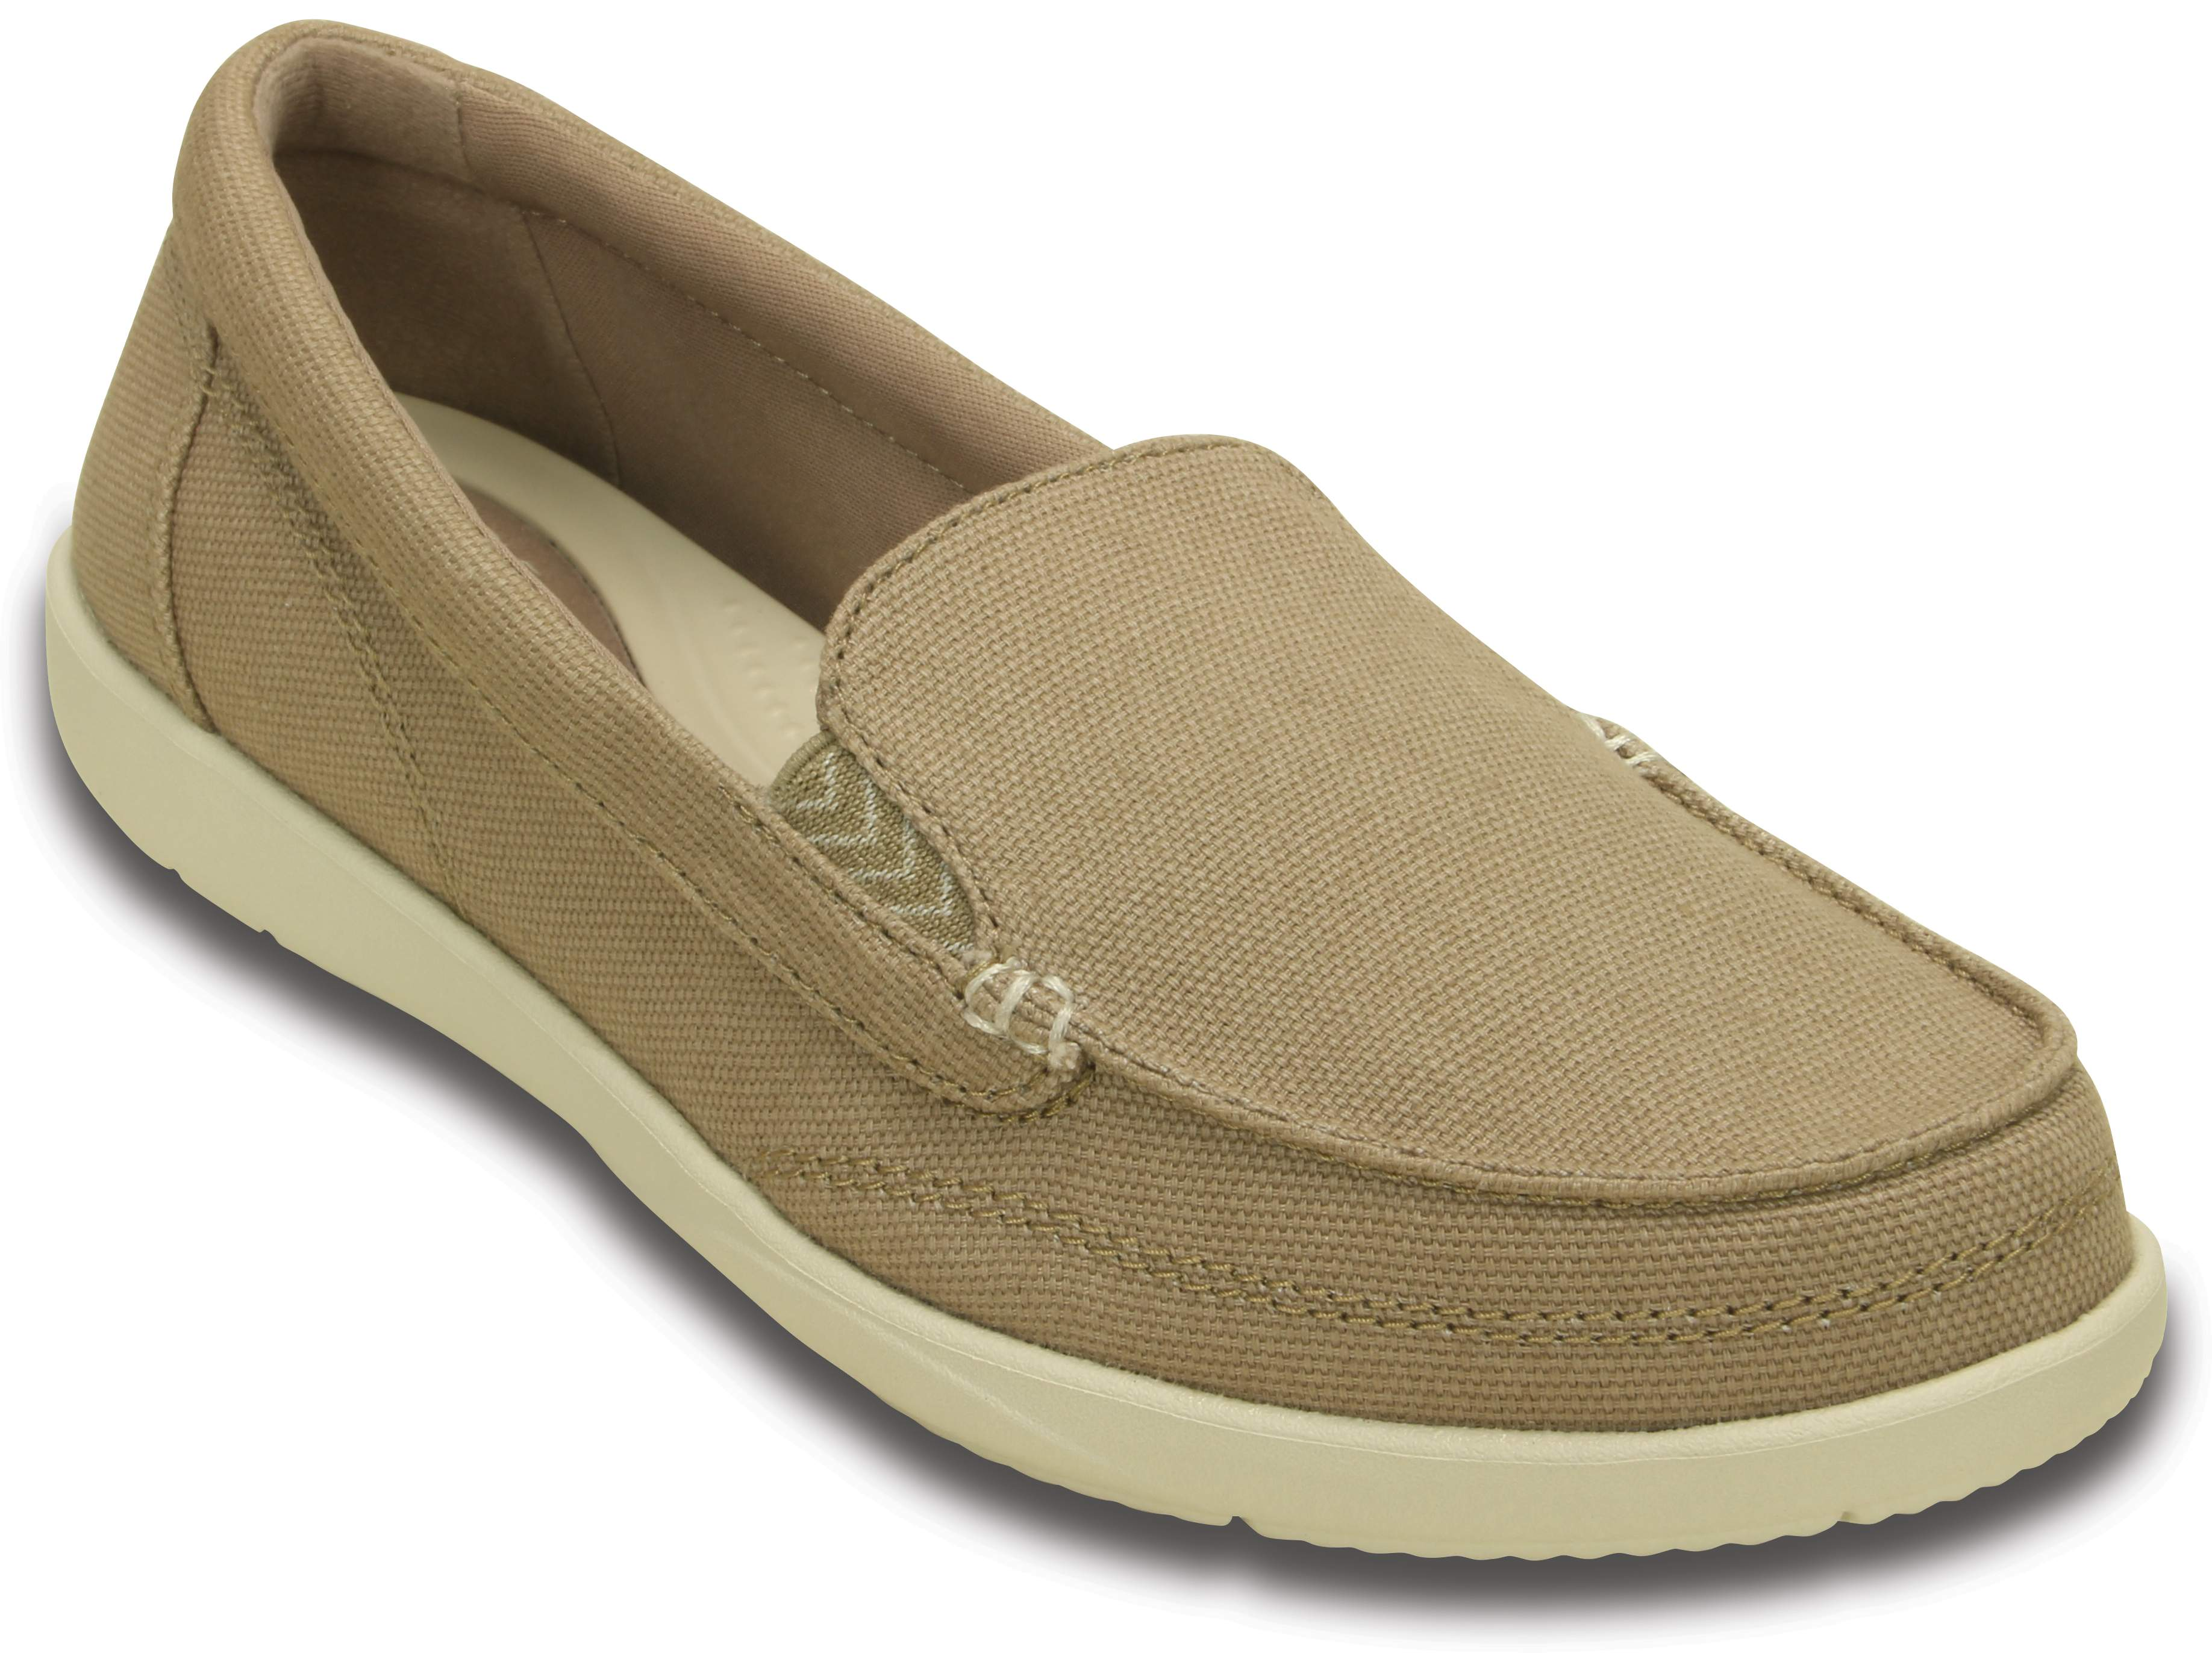 Walu II Canvas Loafer Crocs